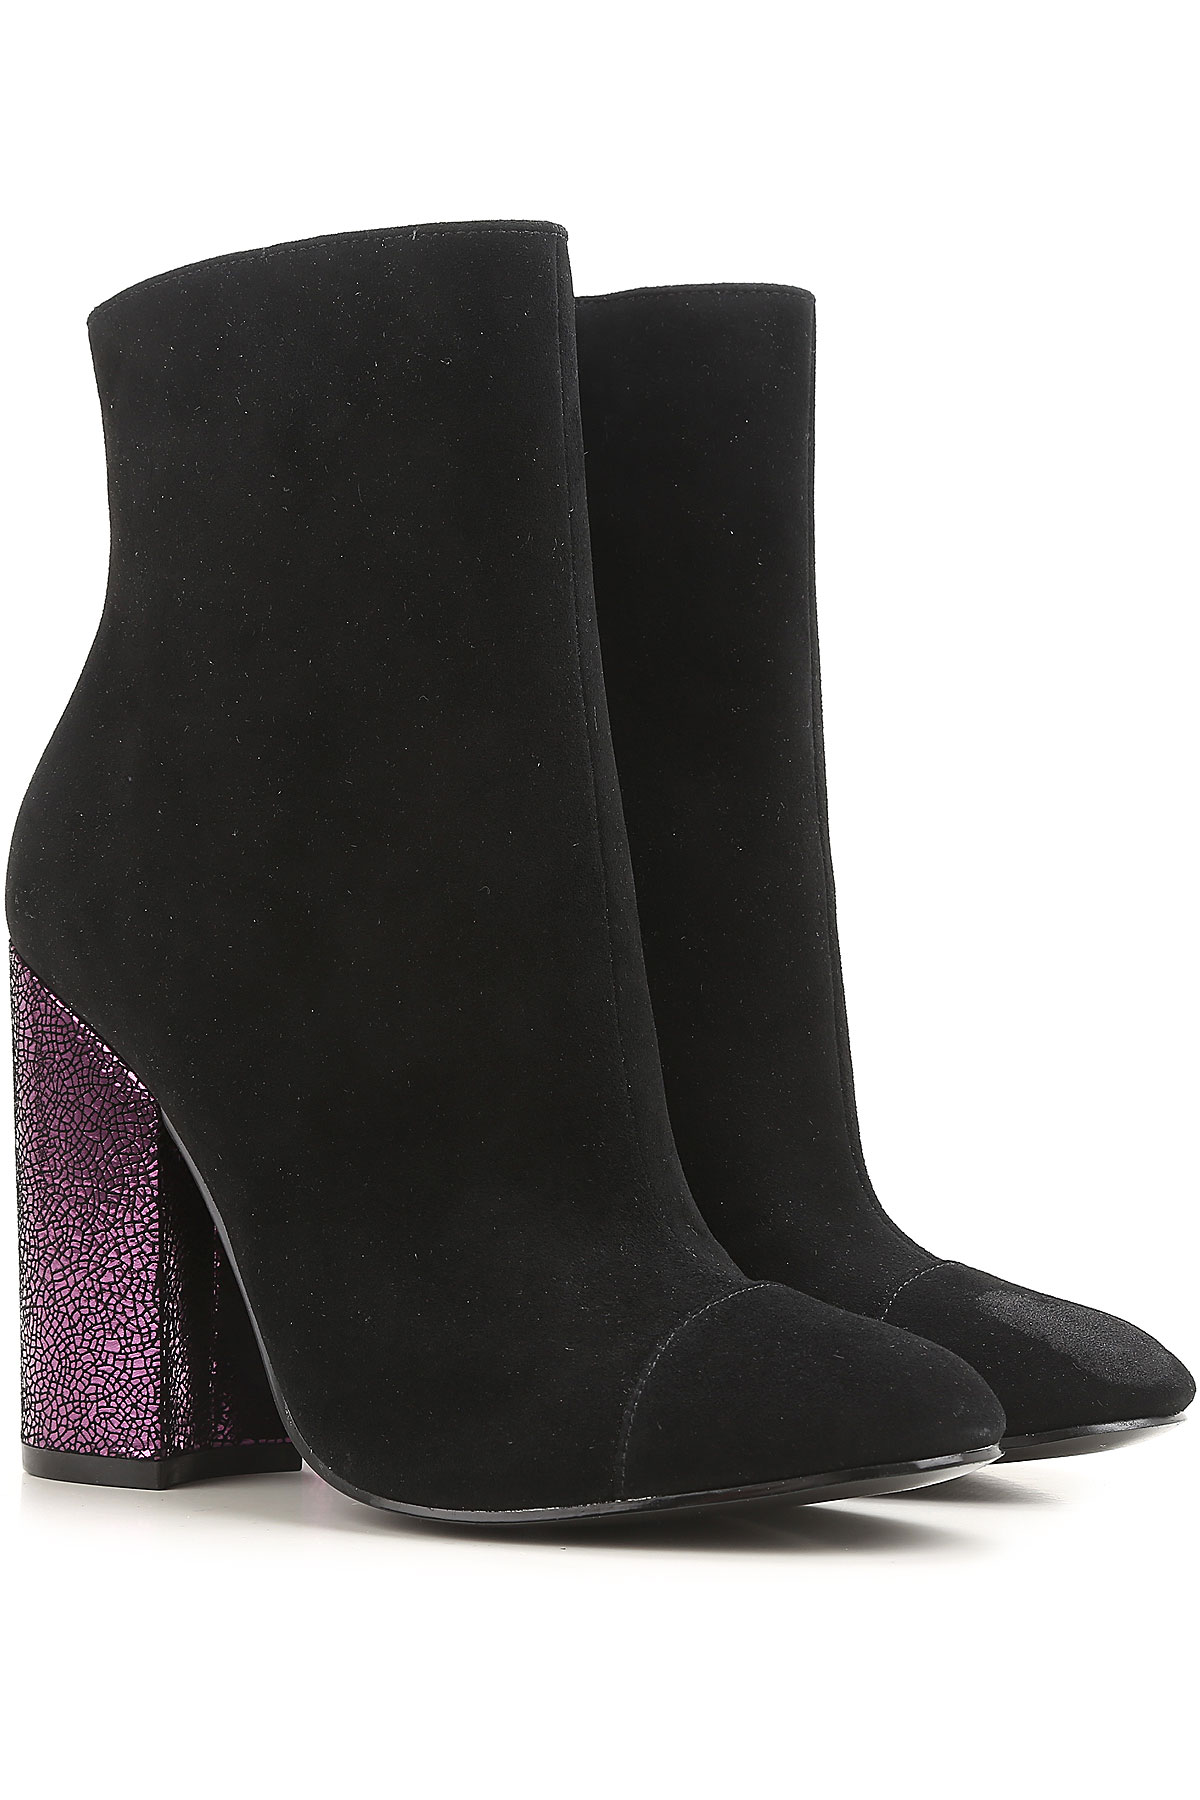 Kendall Kylie Boots for Women, Booties On Sale in Outlet, Black, Suede leather, 2019, 5.5 6 7 8